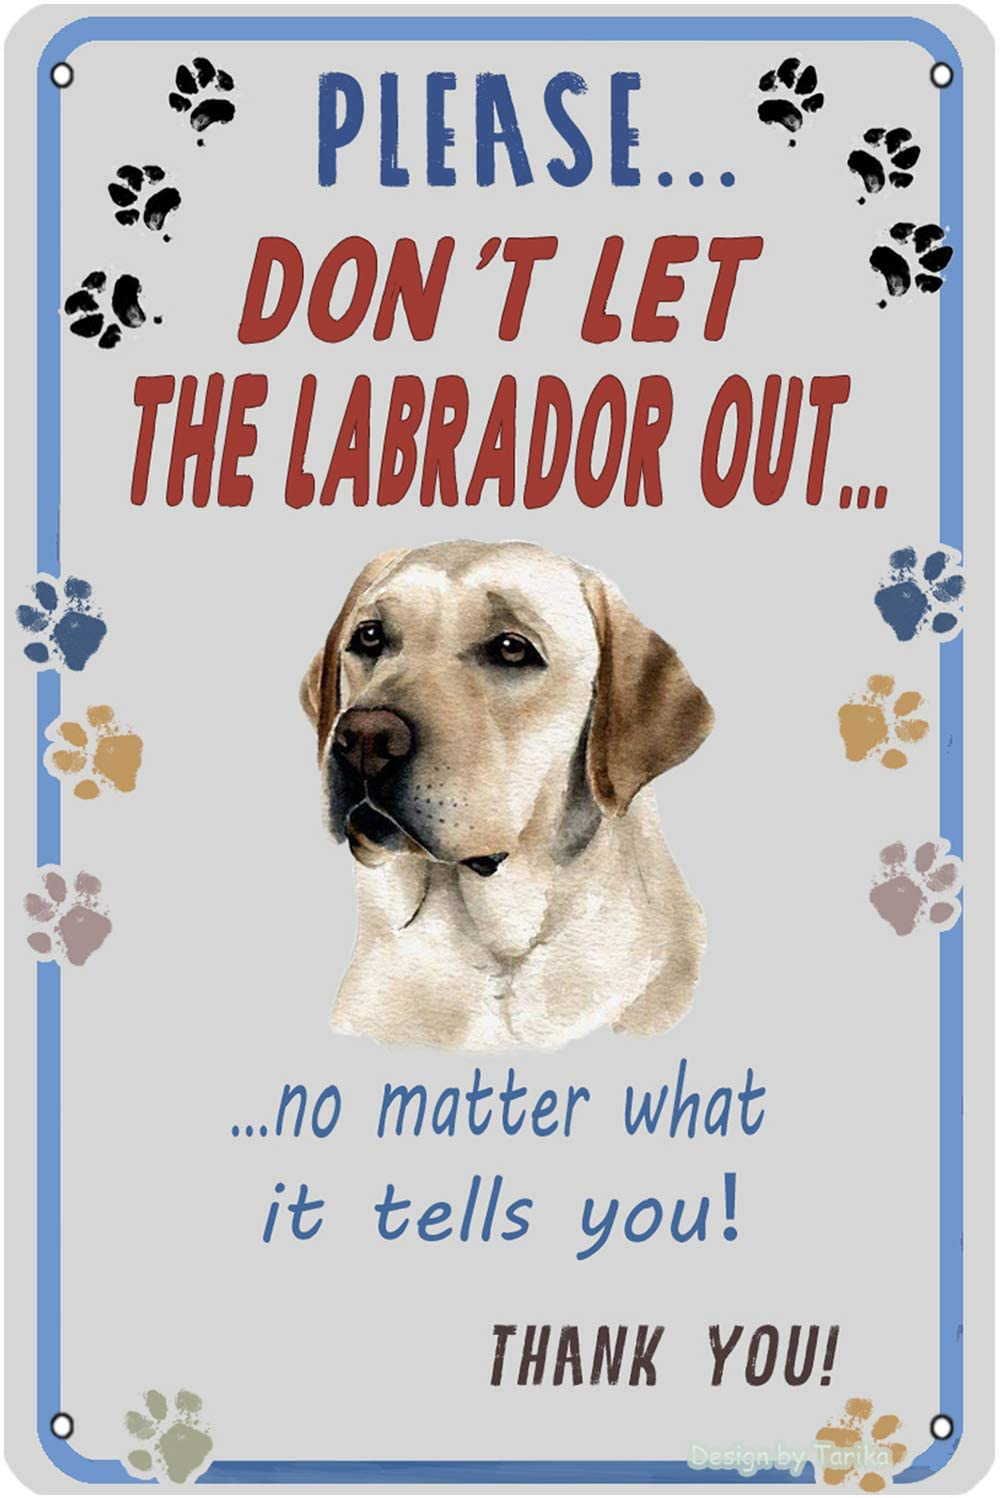 Please…Don't The Labrador Out… No Matter What It Tells You Think You ! 20X30 cm Iron Vintage Look Decoration Art Sign for Home Kitchen Bathroom Farm Garden Garage Inspirational Quotes Wall Decor